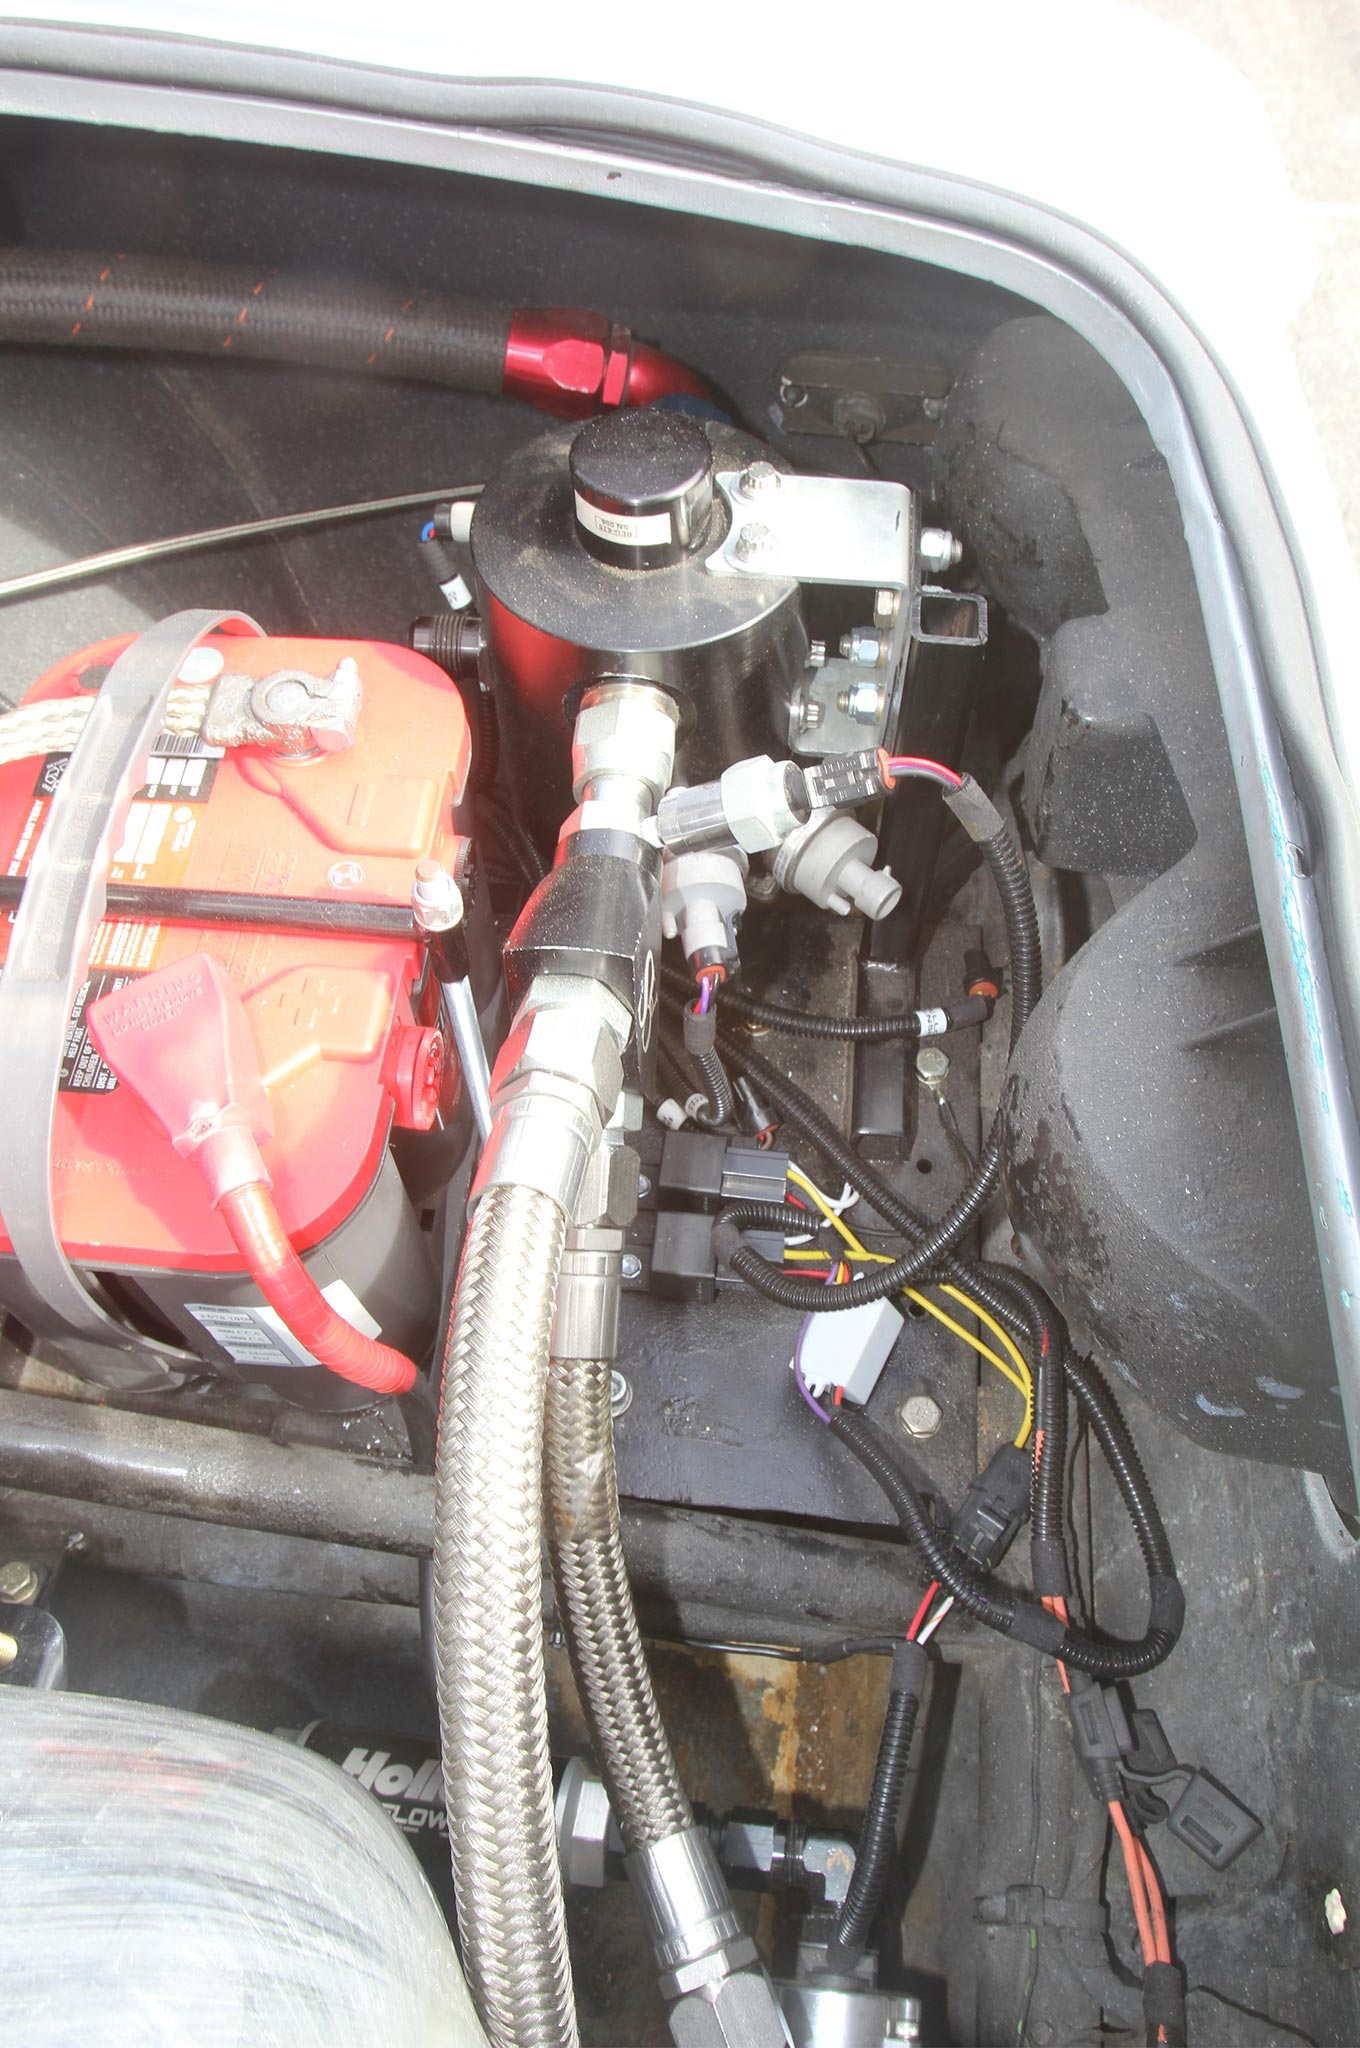 The two high-pressure lines Y into the pressure regulator and then a single, large -20 AN line leads through the interior to the engine bay.